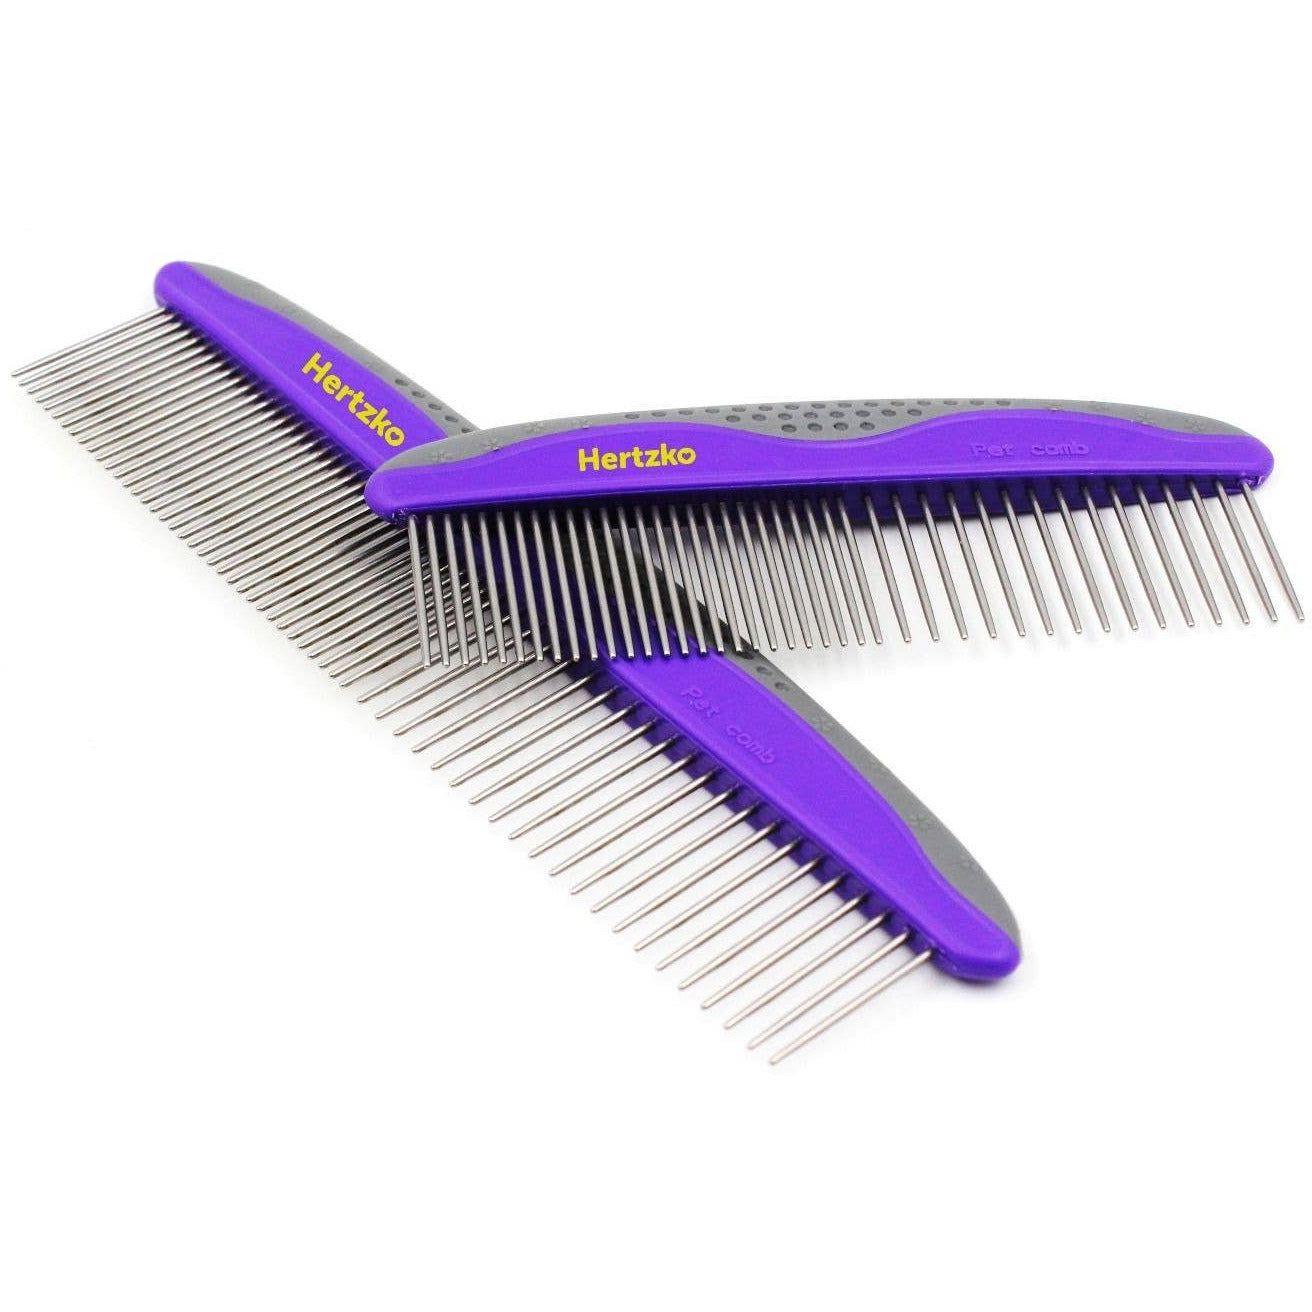 Hertzko Large And Small Grooming Comb - 2 Pack